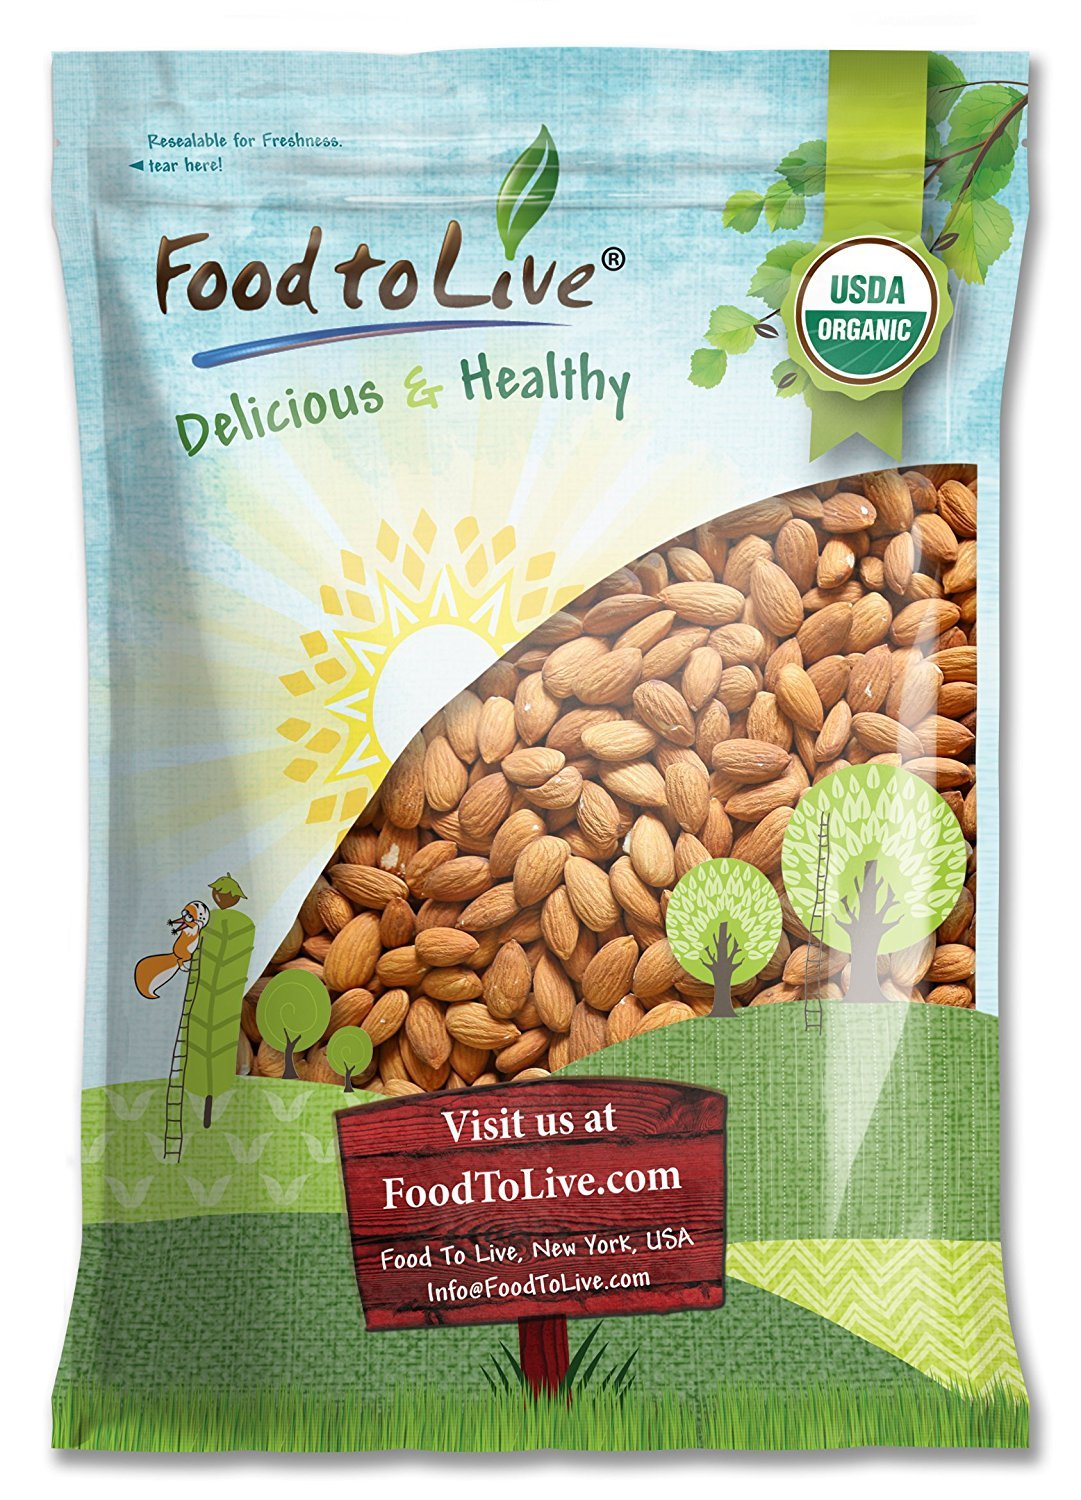 Raw Organic Almonds Bulk by Food to Live (Non-GMO, No Shell, Whole, Unpasteurized, Unsalted, Kosher) — 12 Pounds